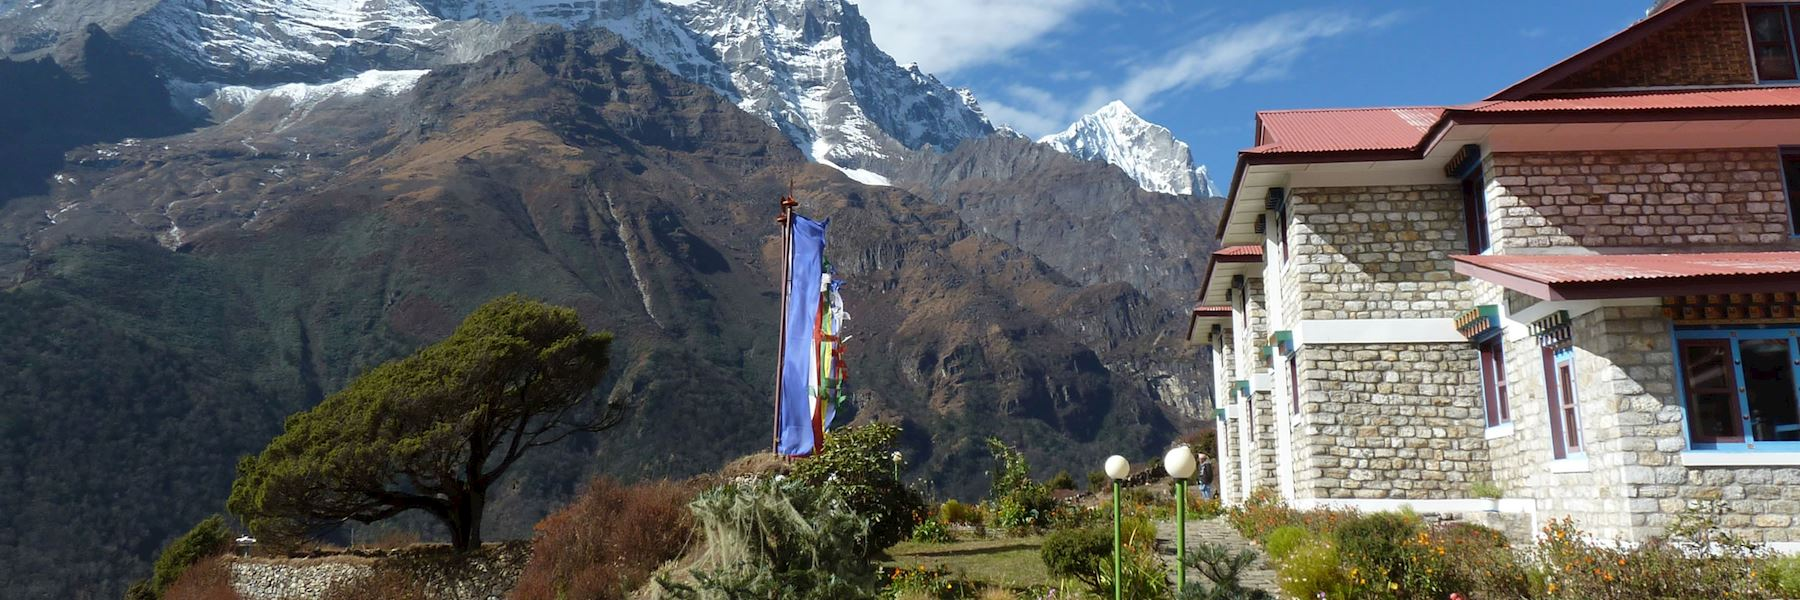 Accommodations in Nepal